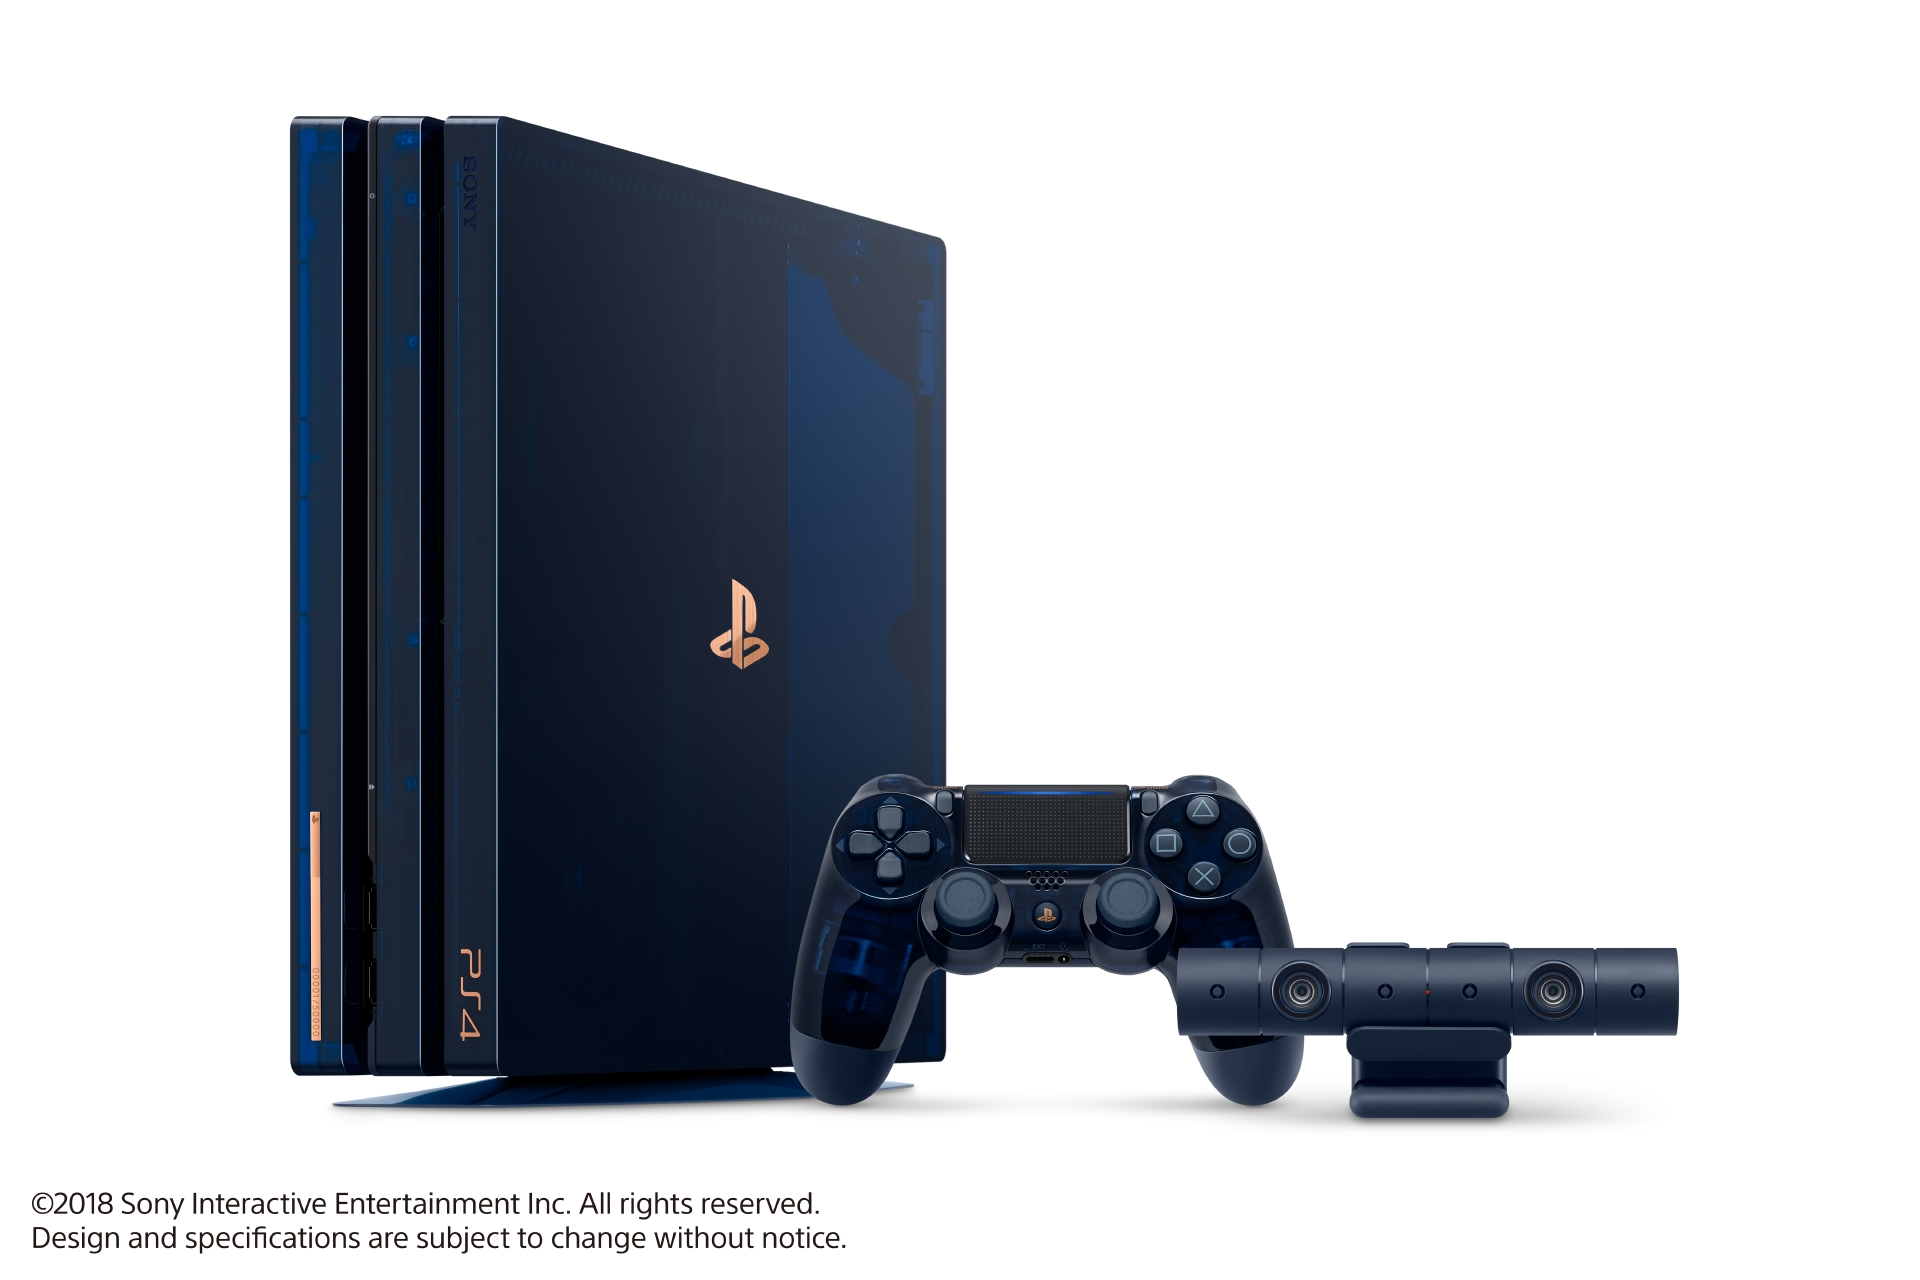 Gorgeous limited edition PS4 Pro marks 500 million PlayStation